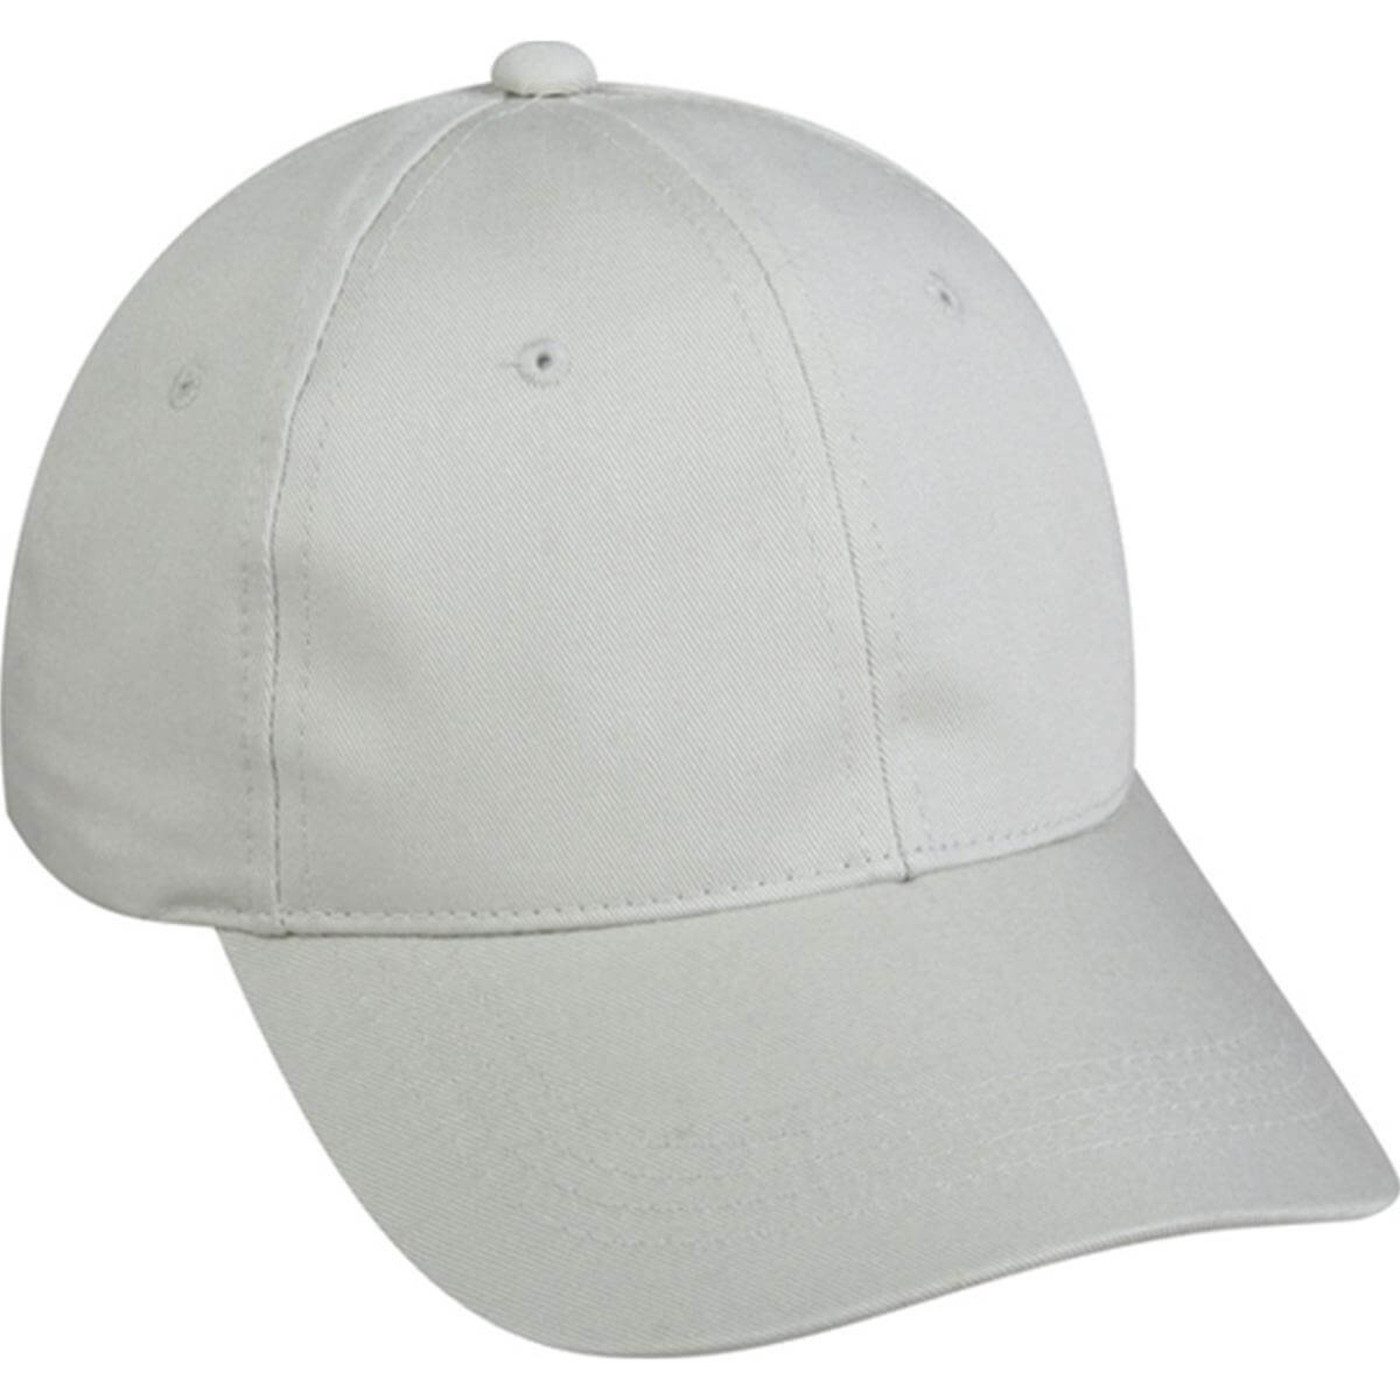 Outdoor Cap 6 Panel Chino Twill Cap in Putty Color